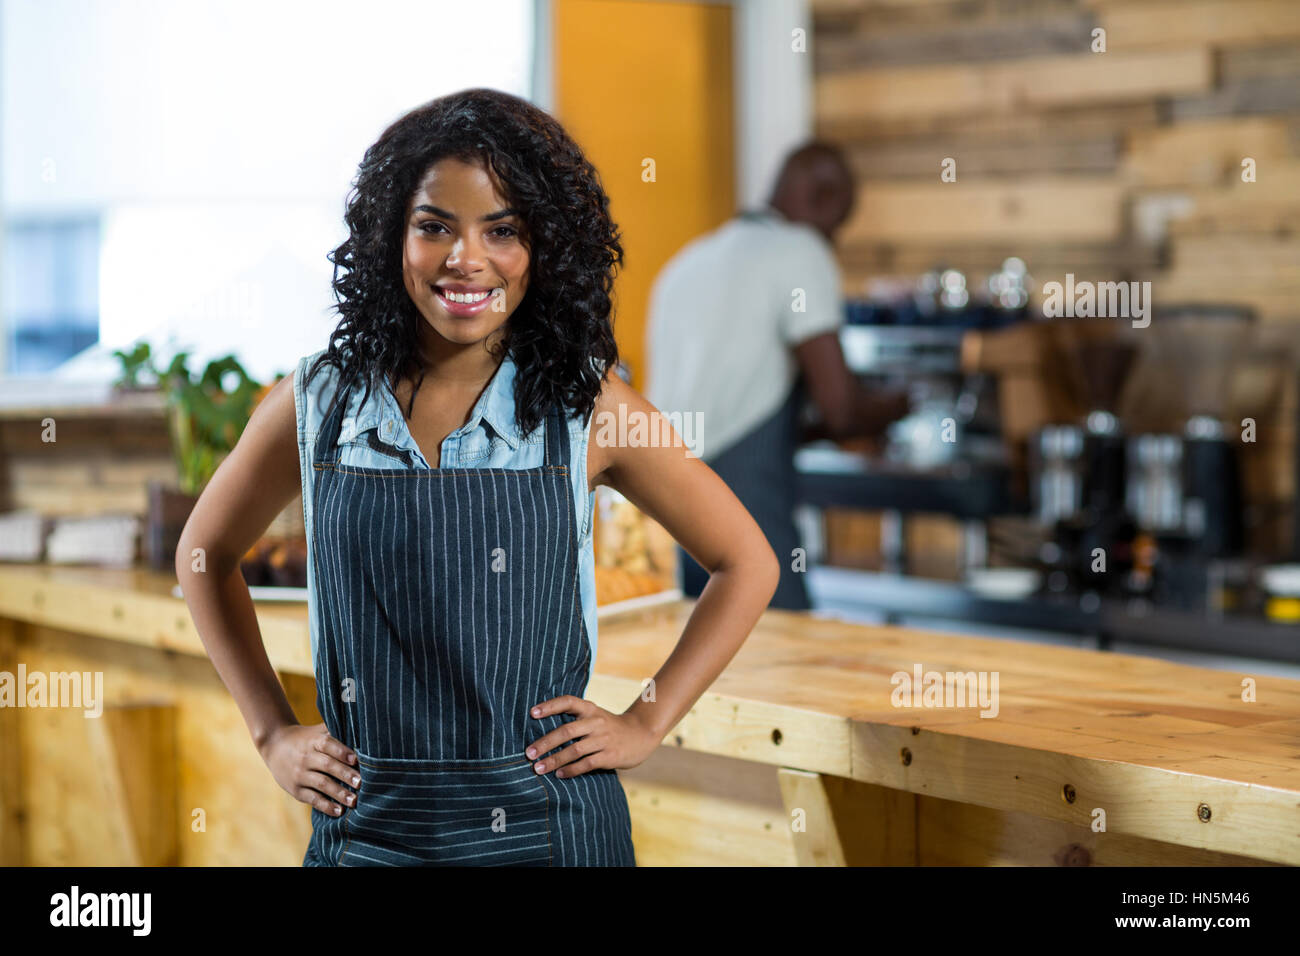 Portrait of smiling waitress standing with hands on hip at counter in café - Stock Image